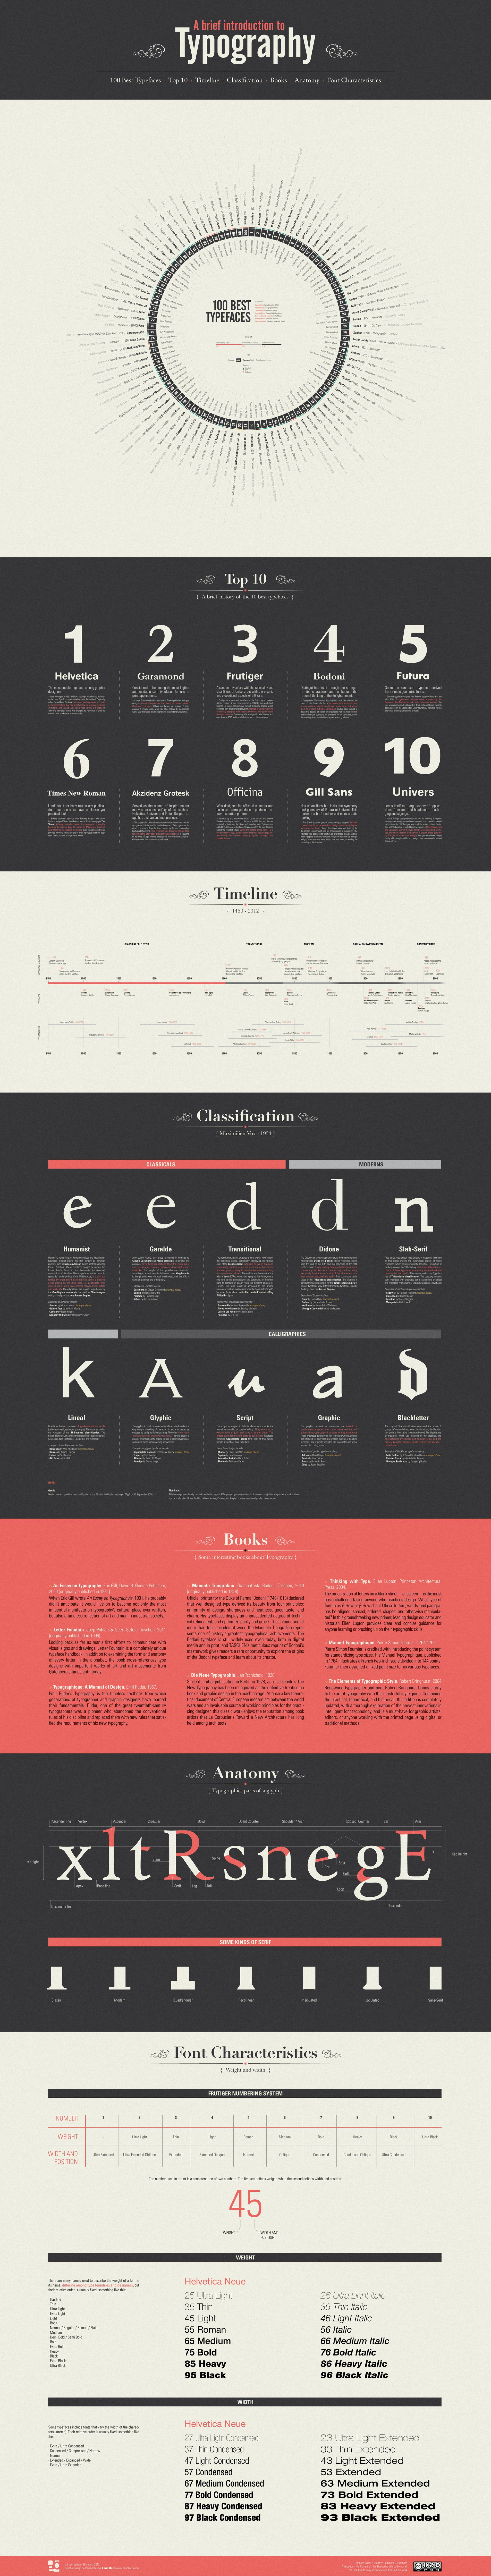 Photo of A Brief Introduction to Typography